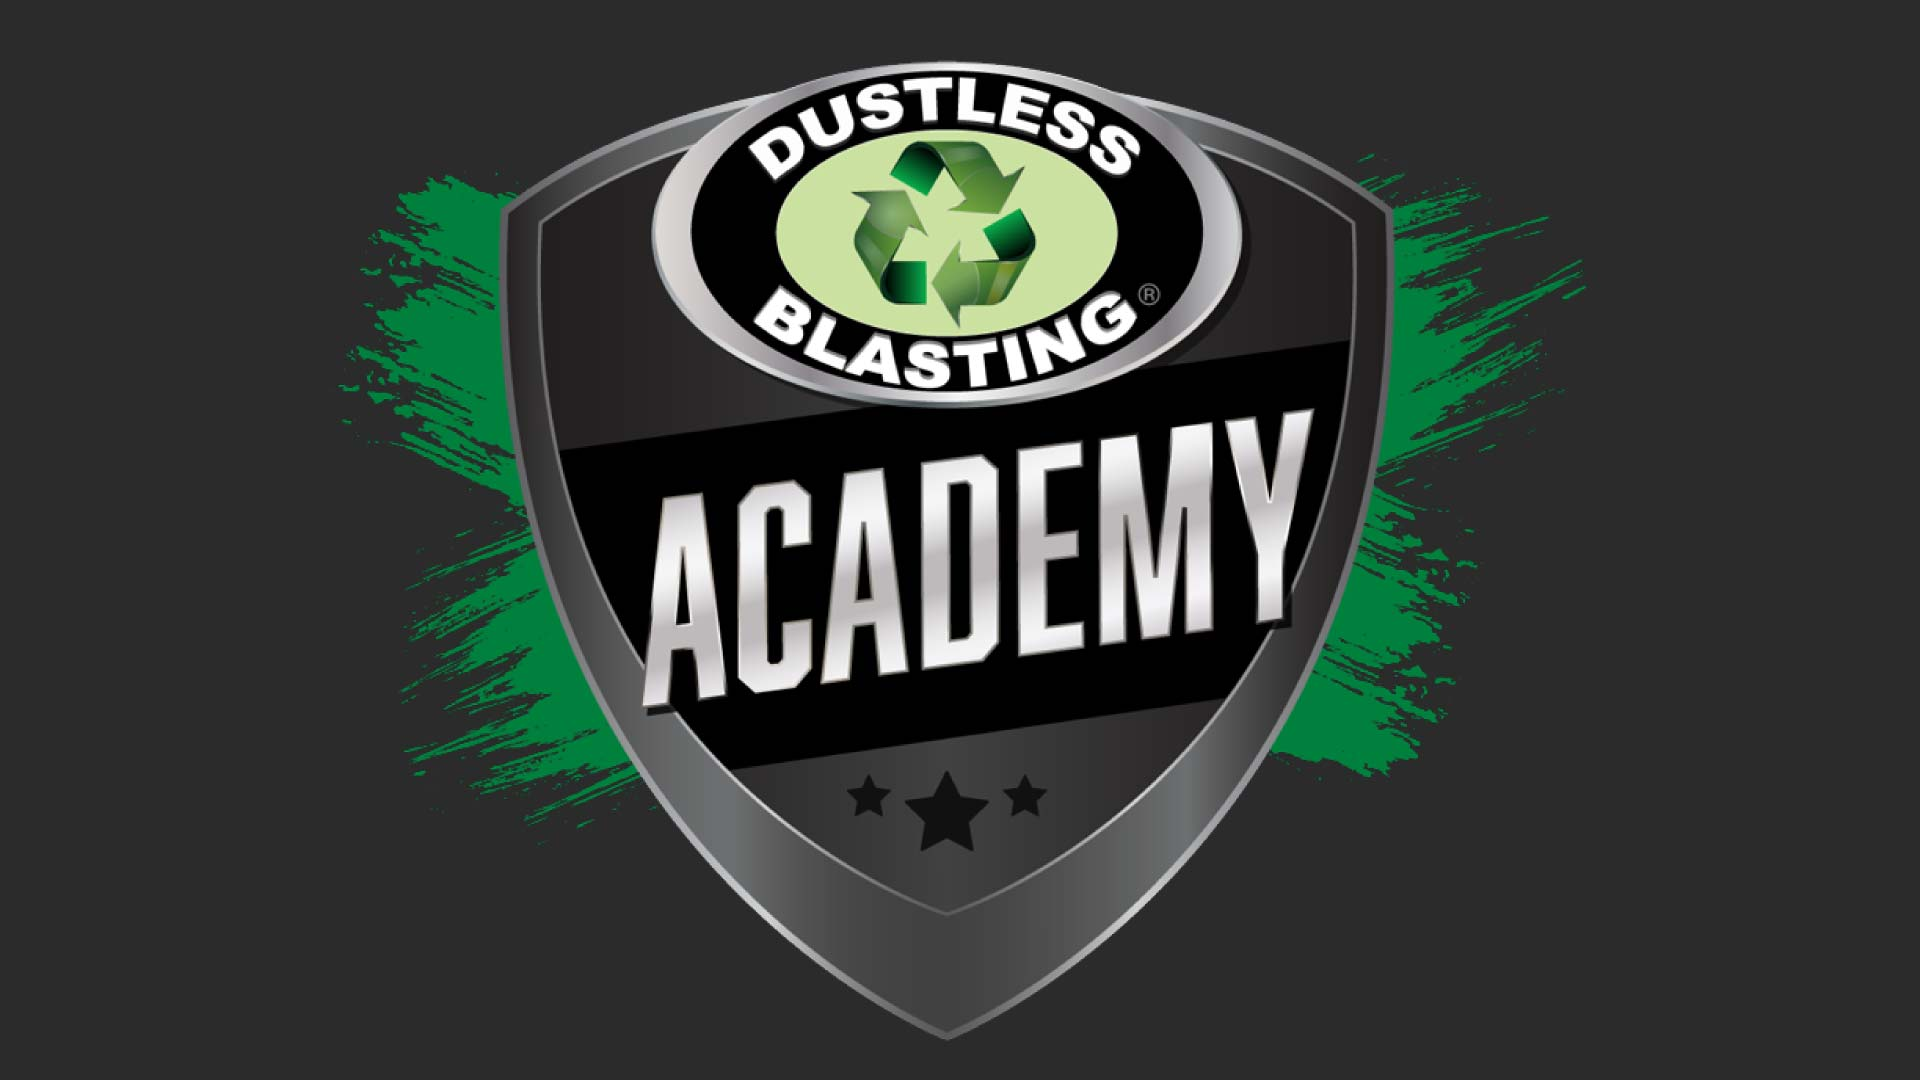 dustless blasting academy